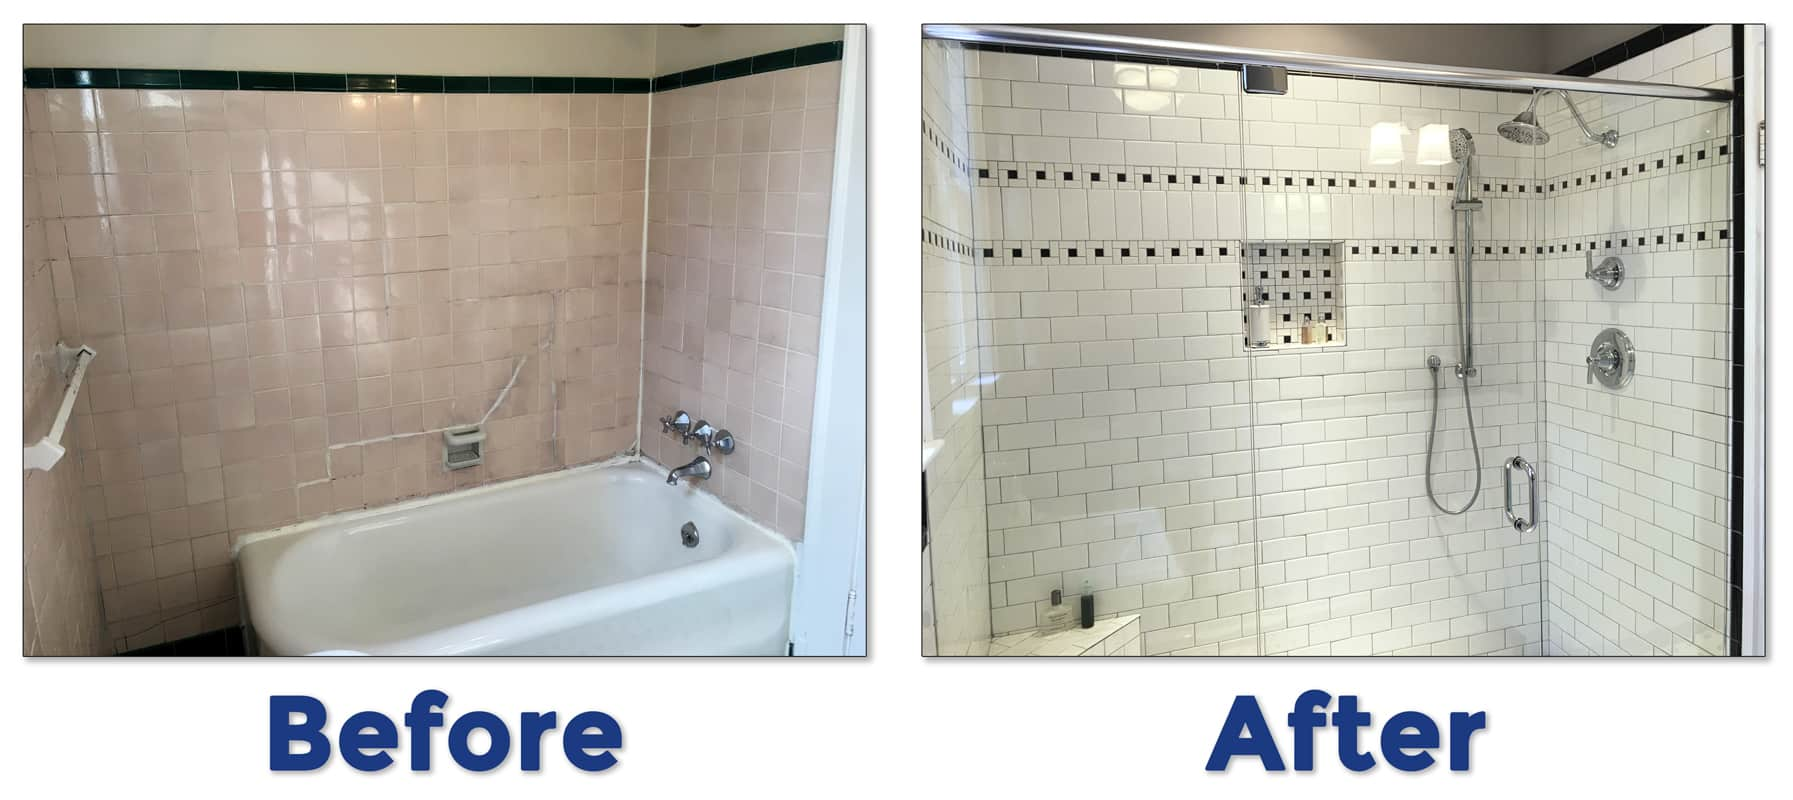 Bathroom Remodeling In Atlanta Morningside Plumbing - Bathroom remodel plumber